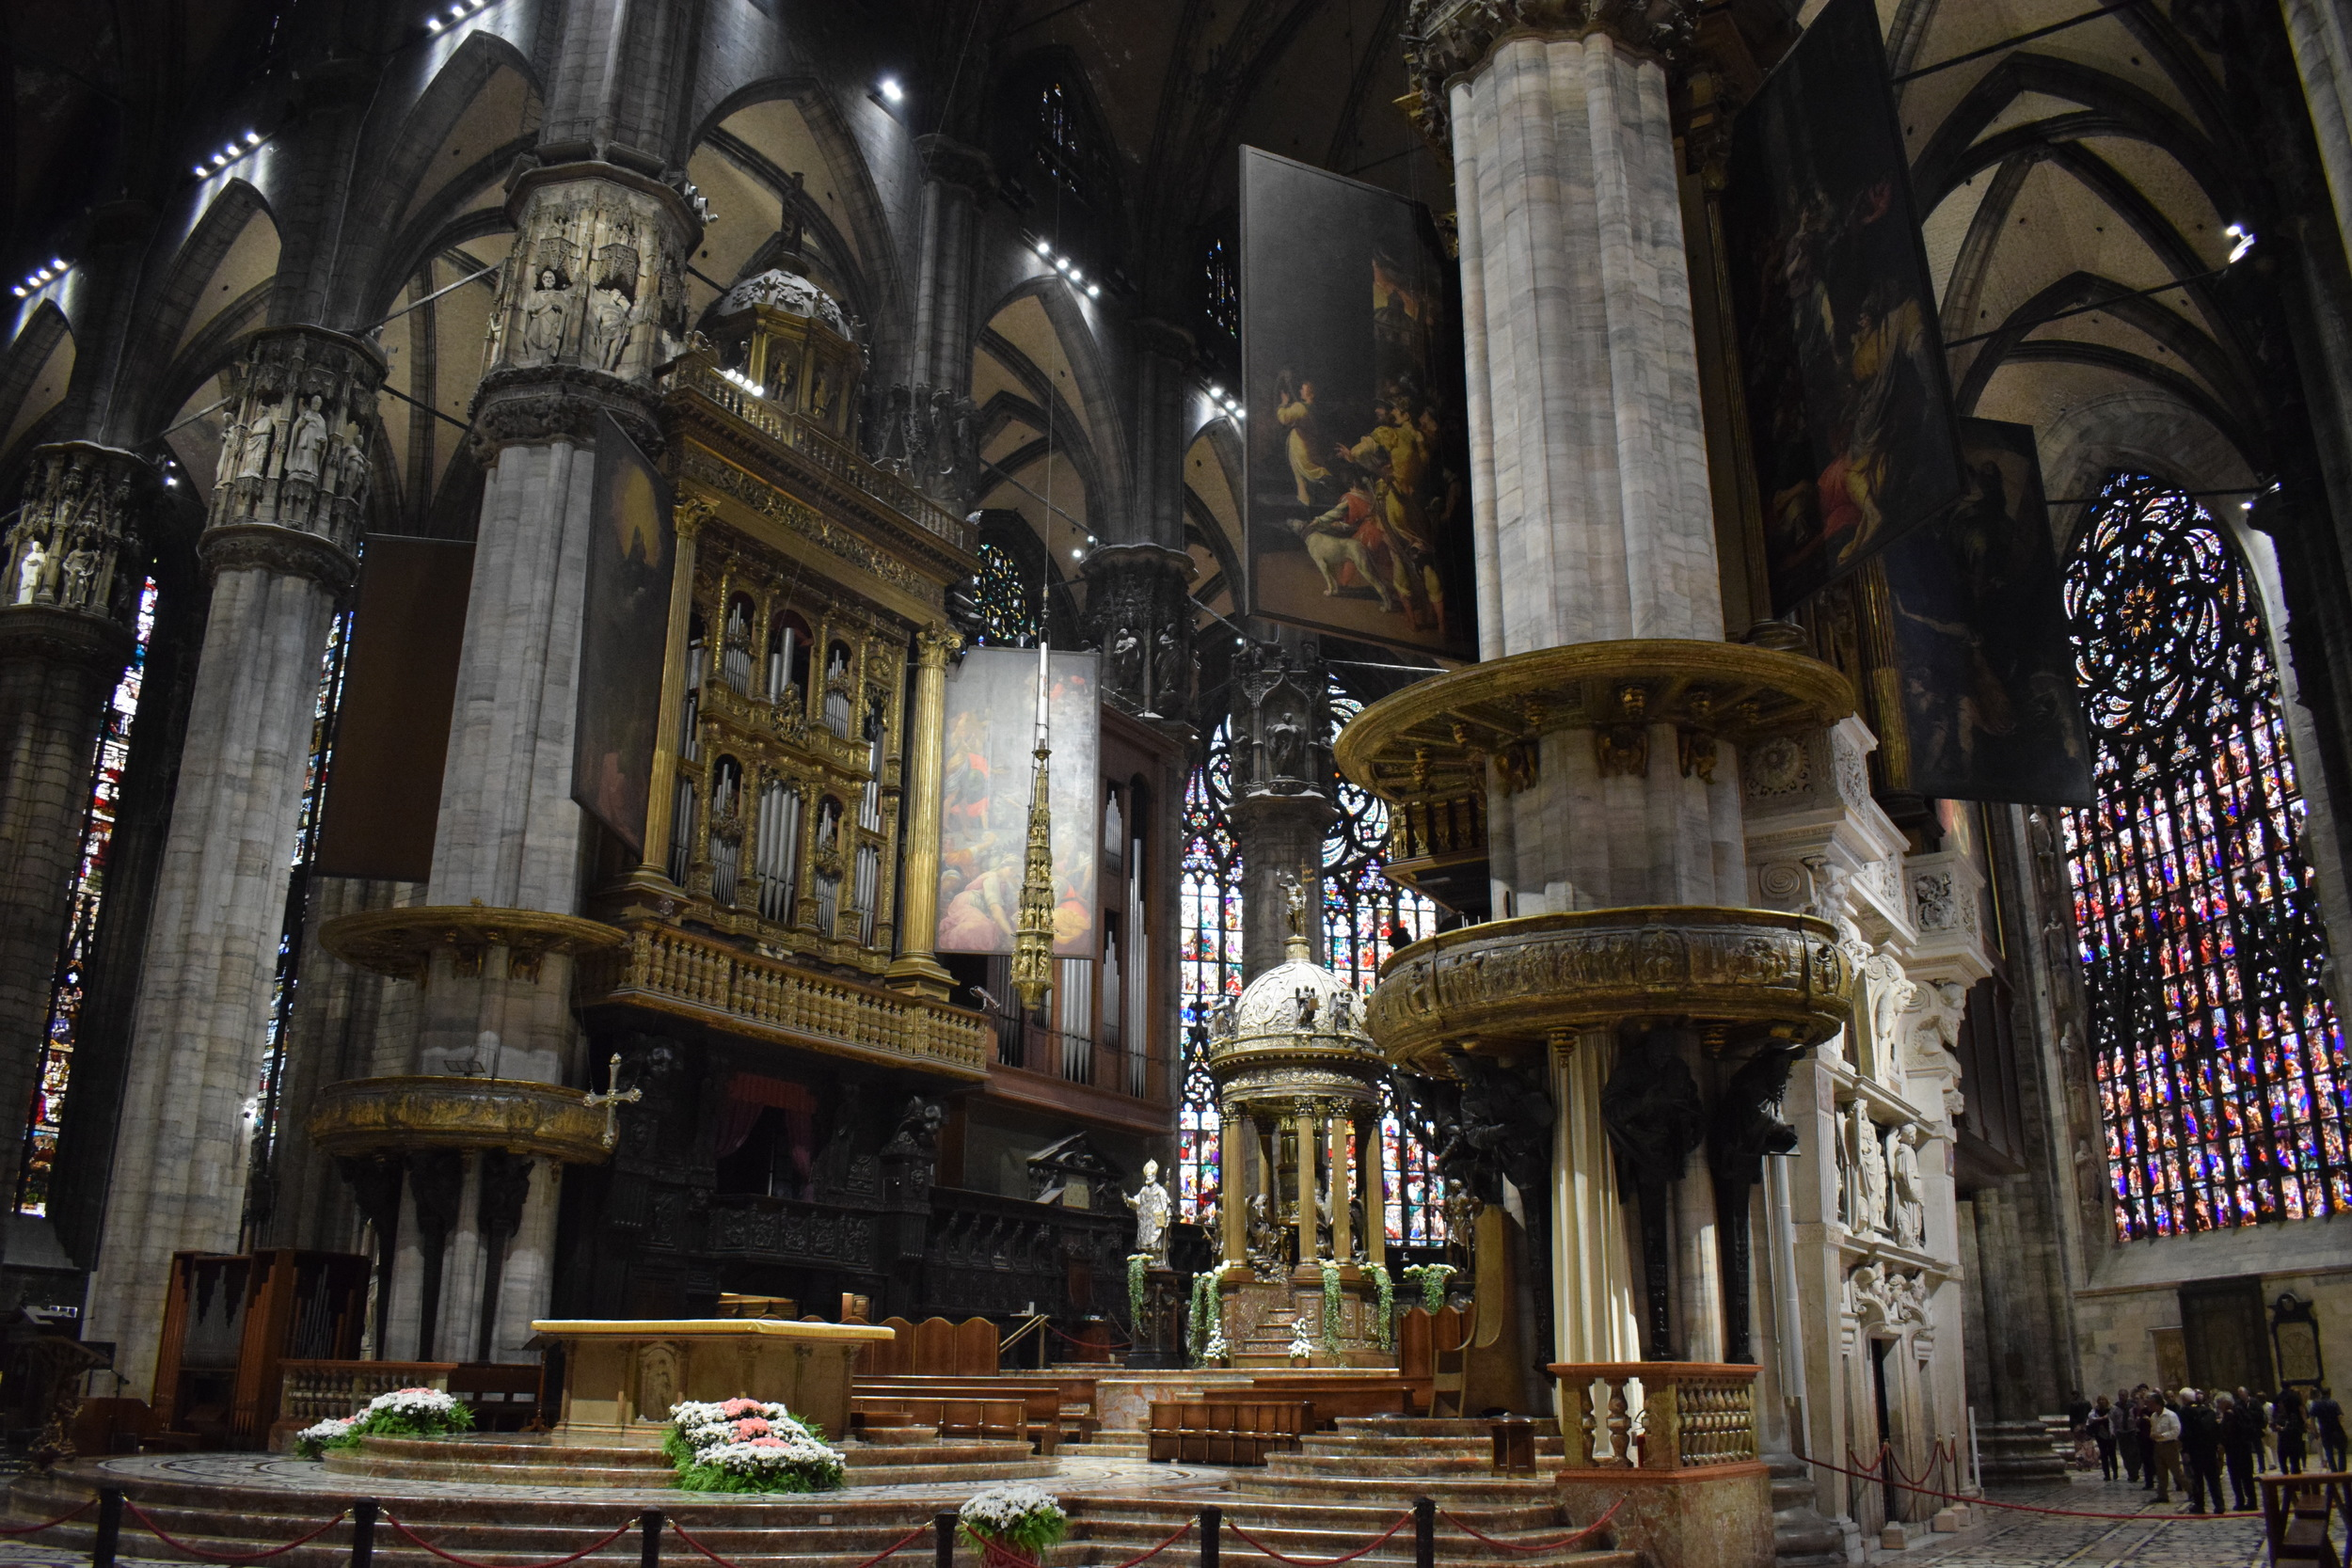 The altar at Milan Cathedral. While it isn't extravagant, it certainly is grand.